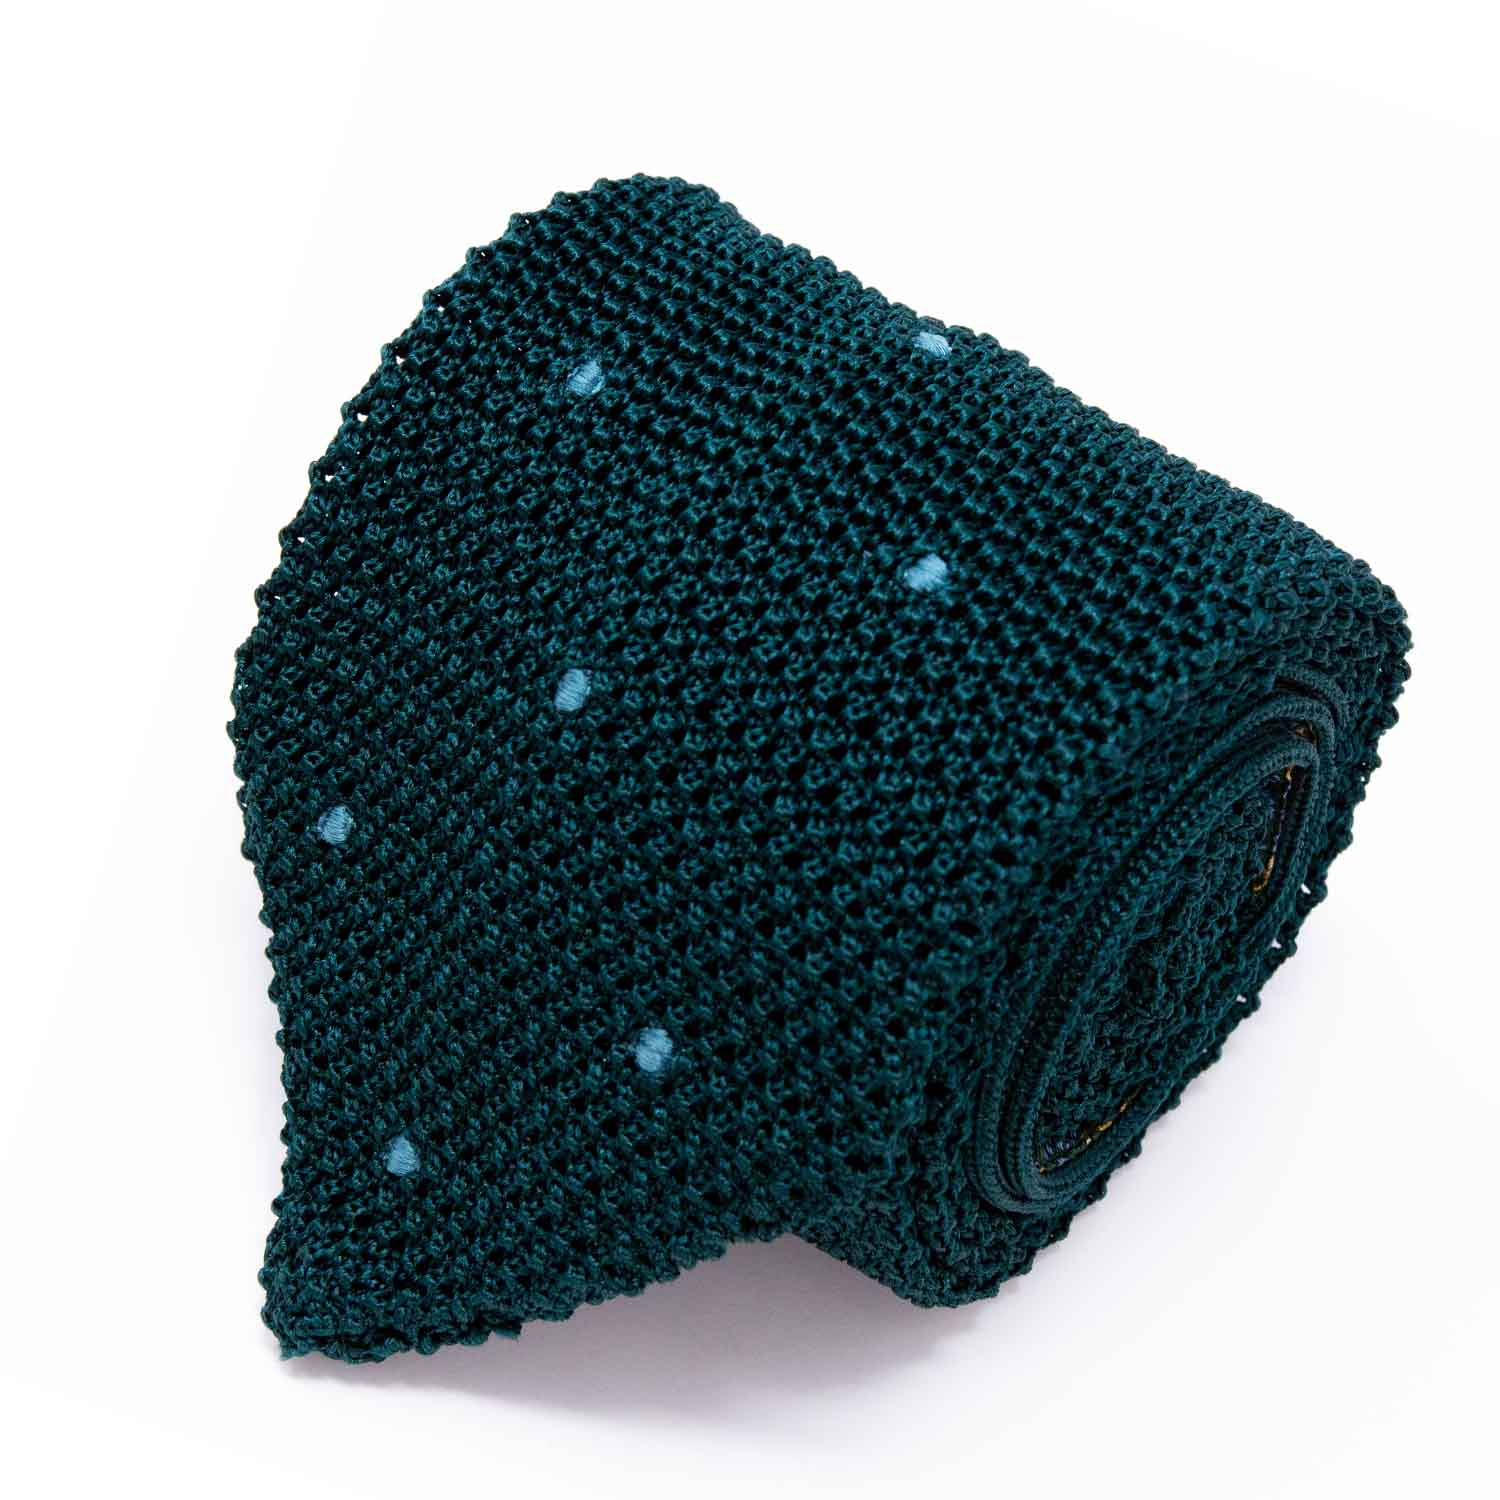 Forest Green and Light Green Polka Dots Zig Zag V Point Knitted Tie - serafinesilk